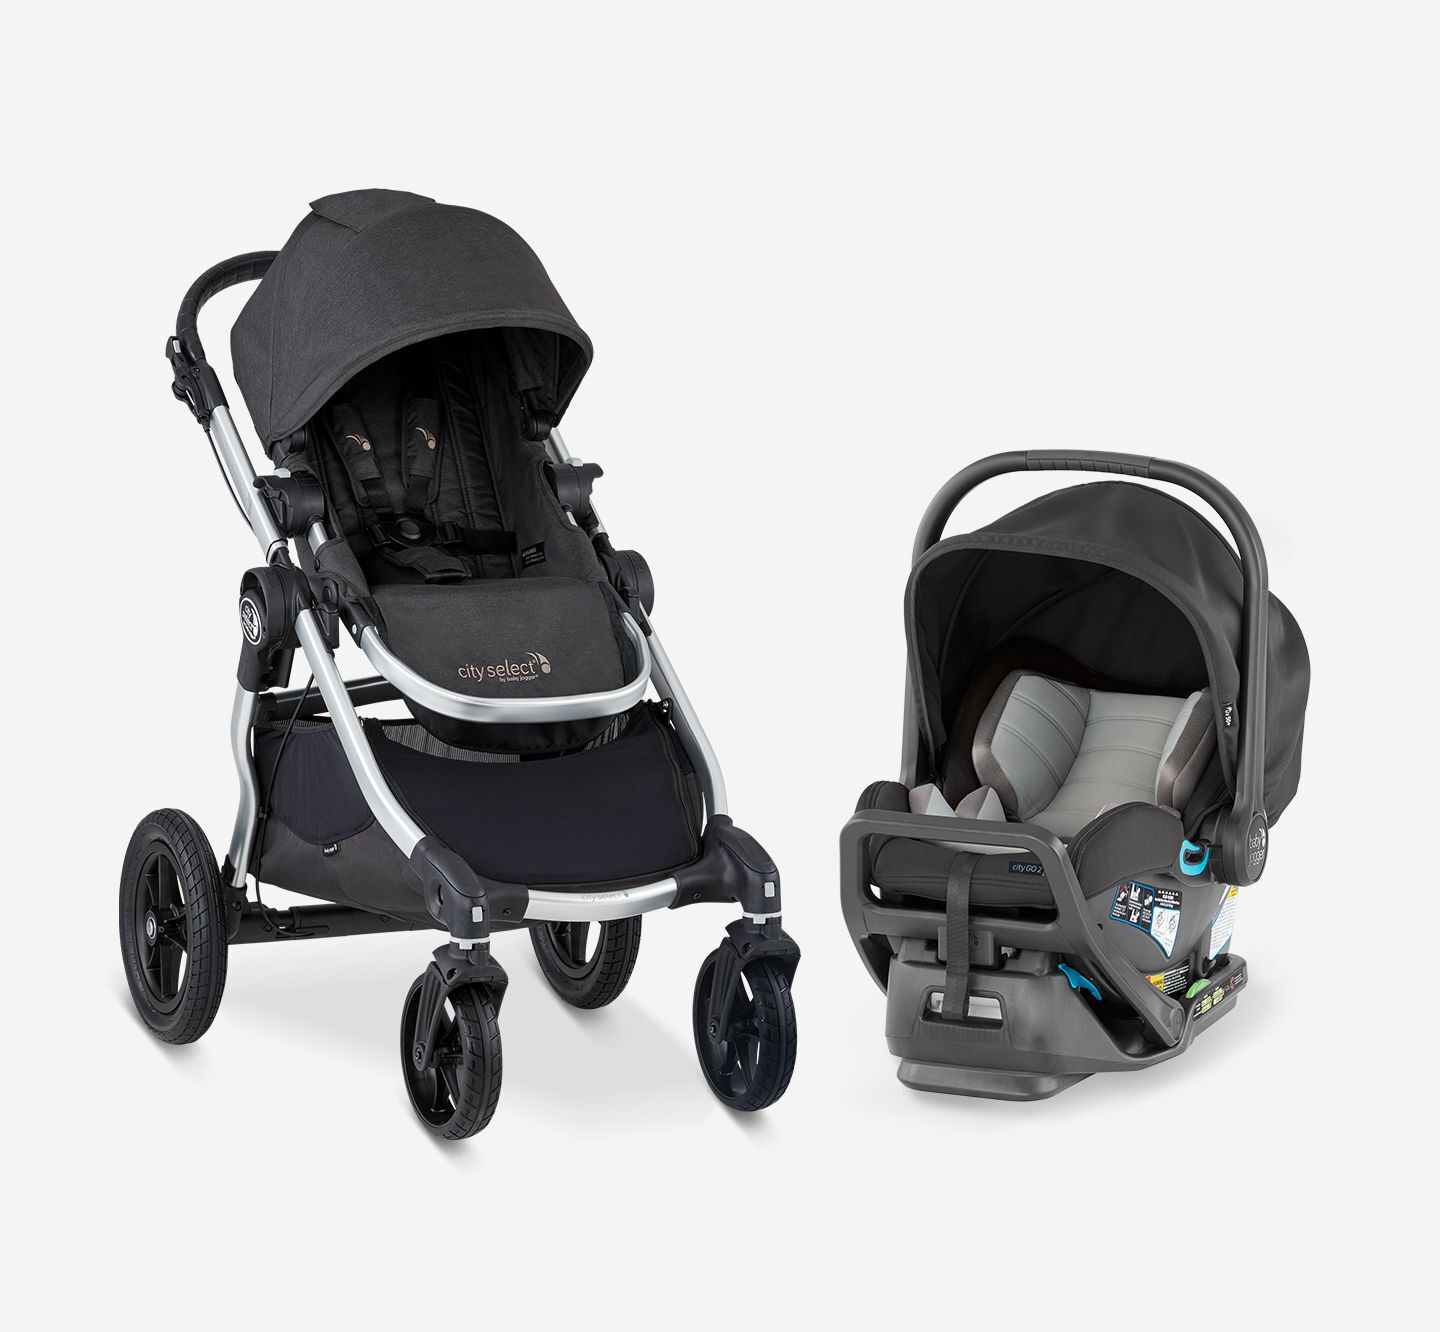 city select stroller and car seat